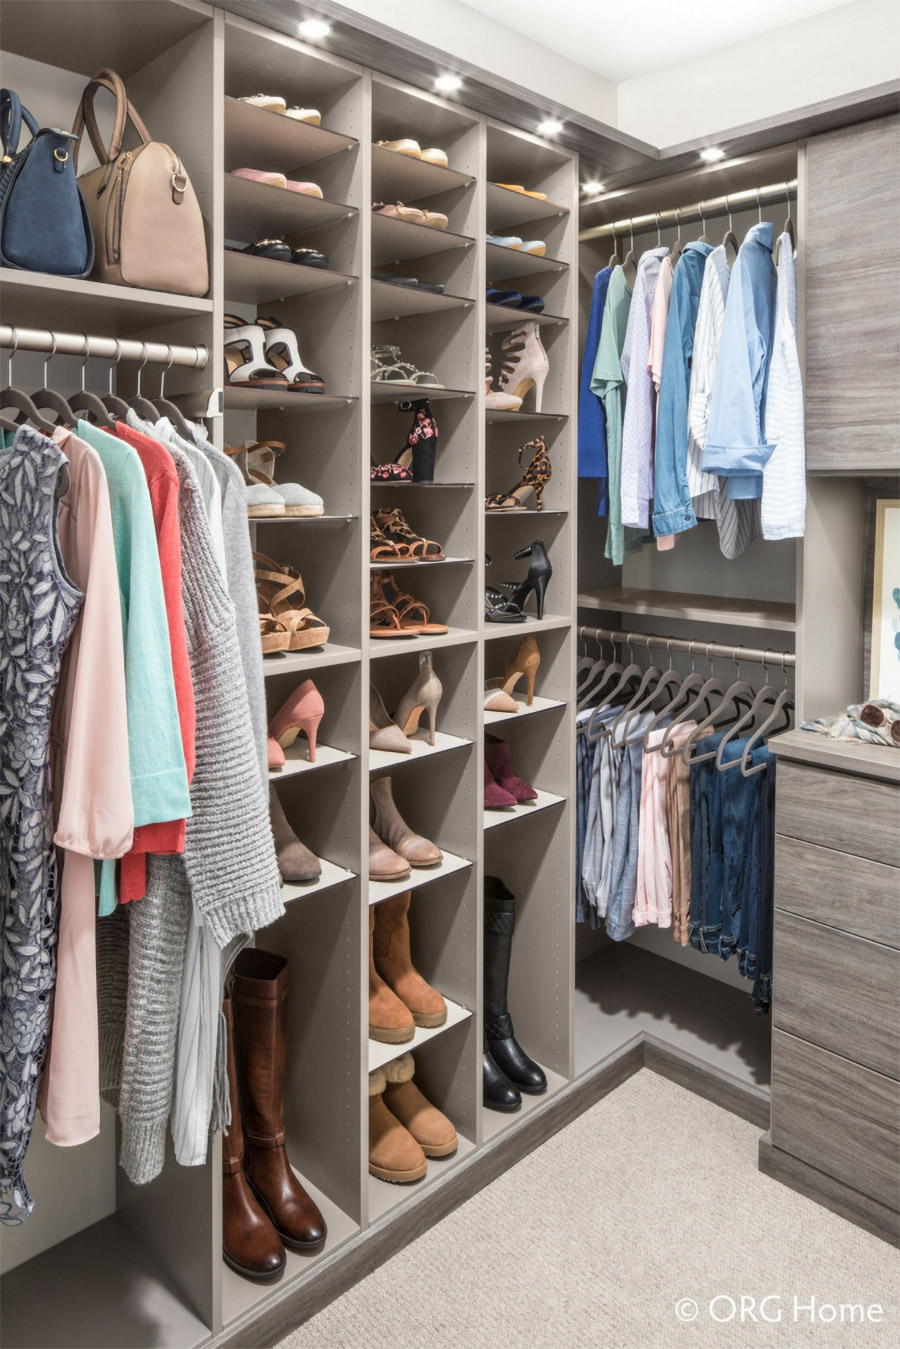 Double hanging custom closet sections New Albany ohio | Innovate Home Org | #CustomStorage #DoubleHanging #StorageOptions #CustomCloset